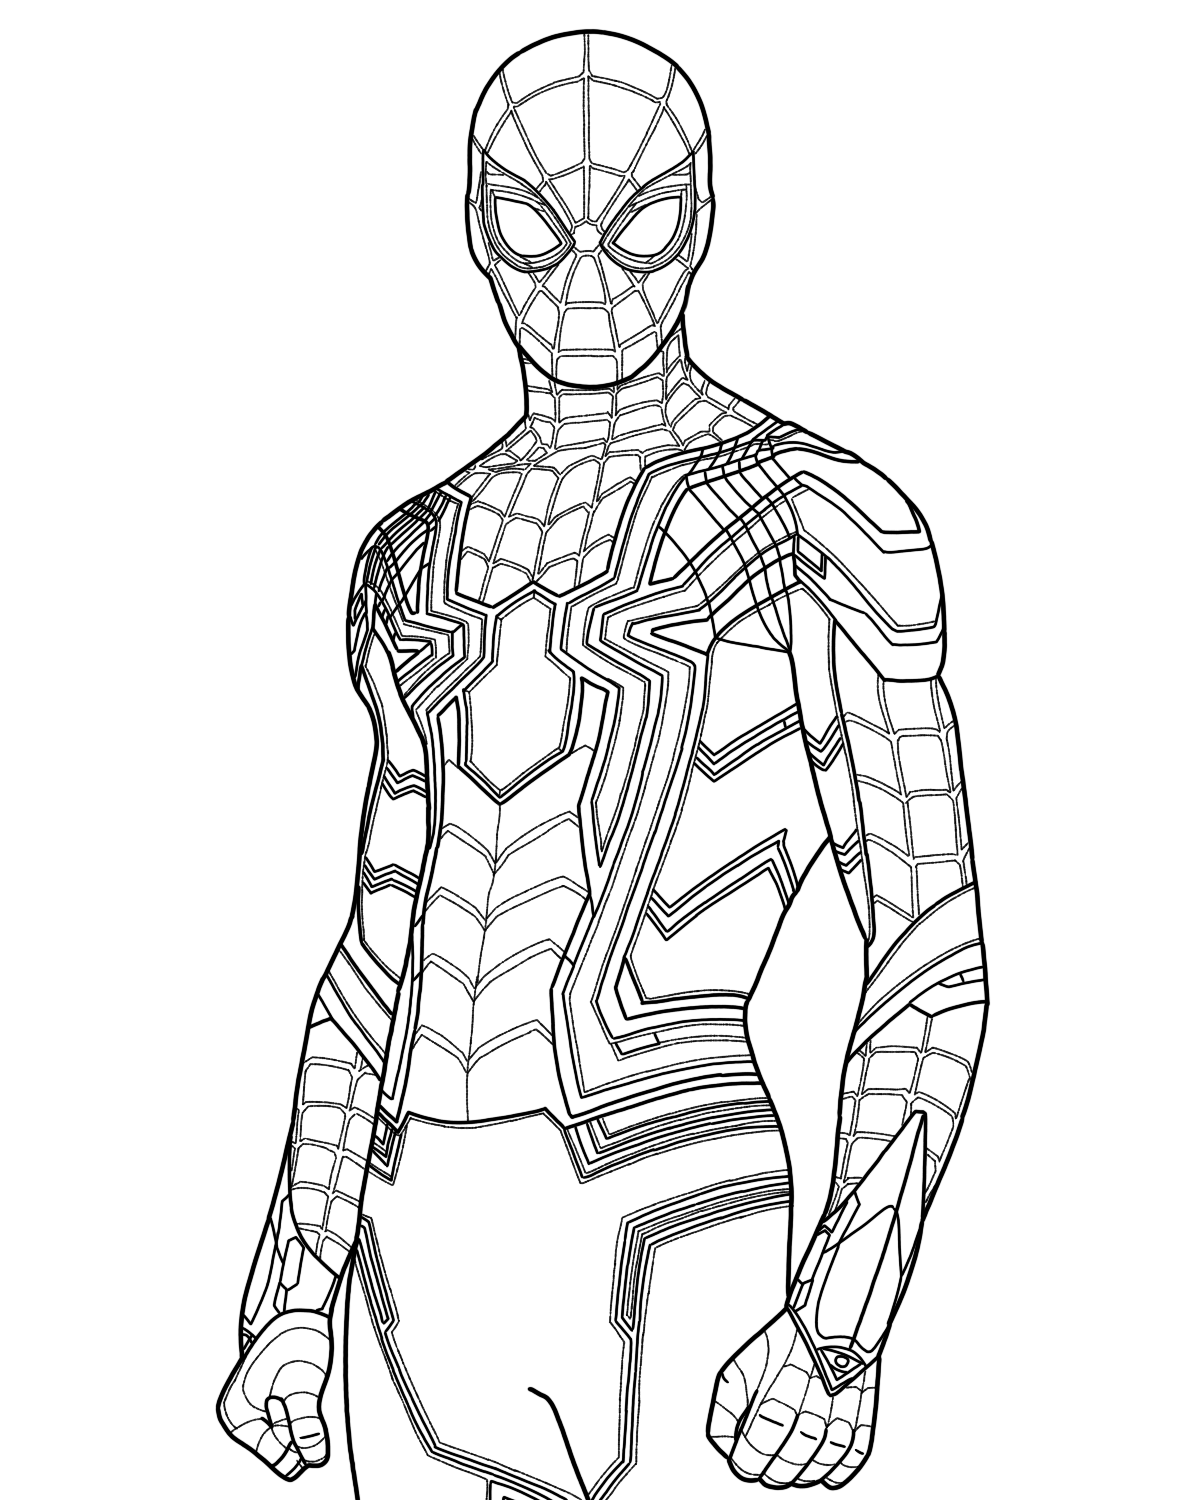 coloring spider man far from home spider man superhero coloring pages from home man coloring far spider